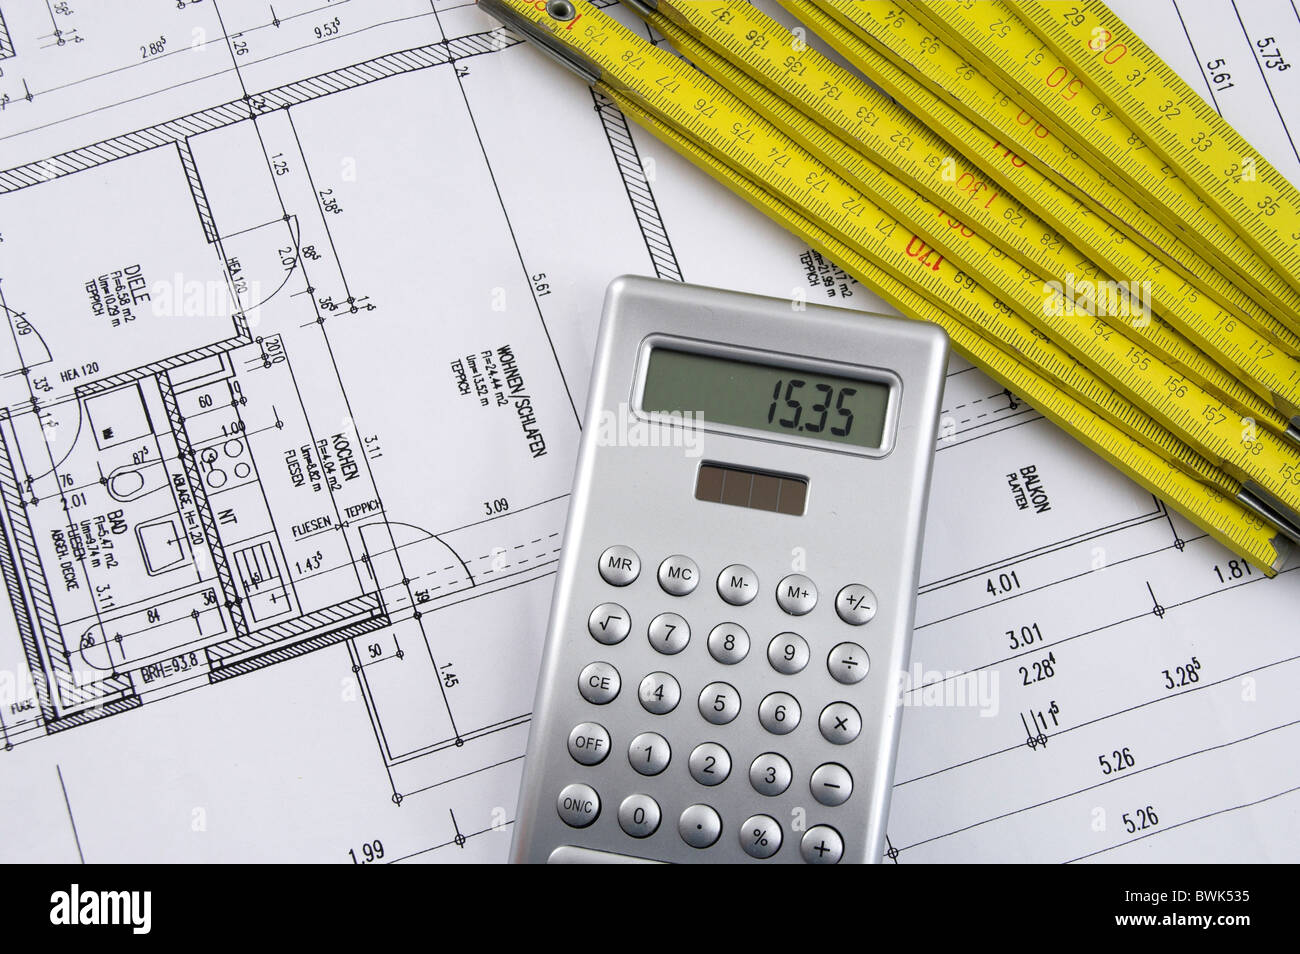 construction calculation costing building house house building plans plan expenses costs calculation comput